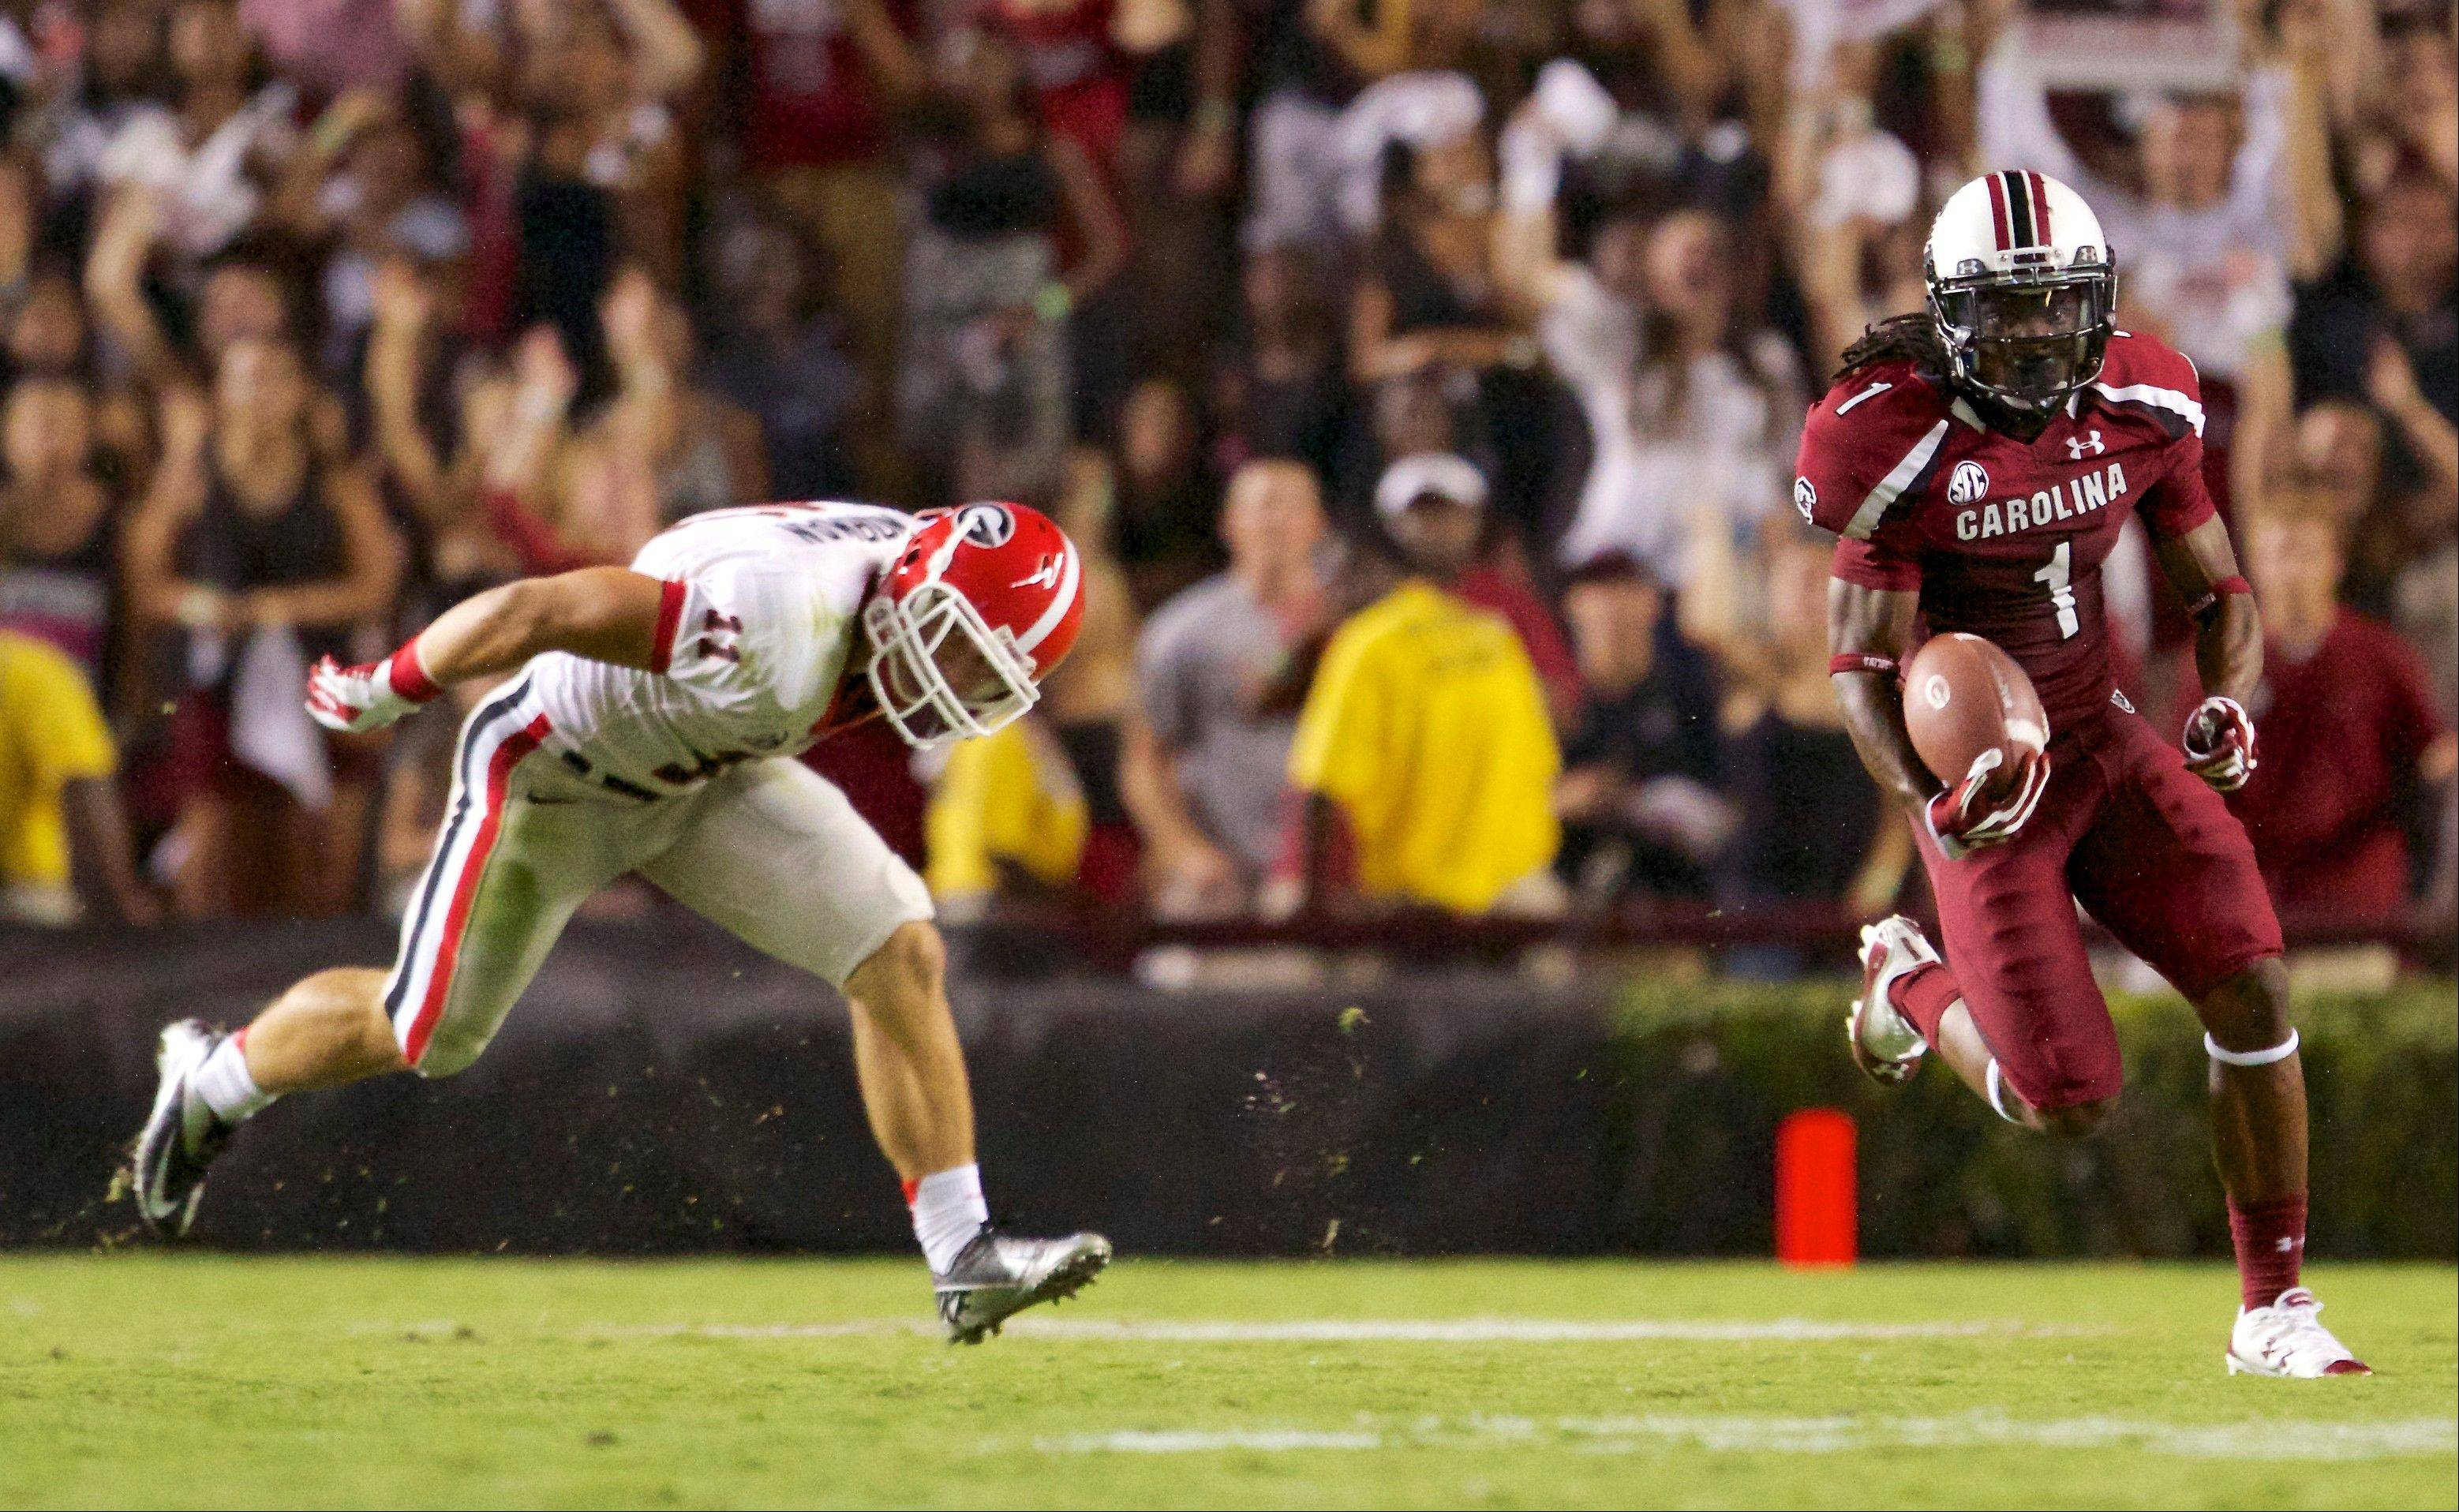 South Carolina's Ace Sanders, right, breaks away from Georgia's Connor Norman on a kick return during the second half Saturday at Williams-Brice Stadium in Columbia, S.C.